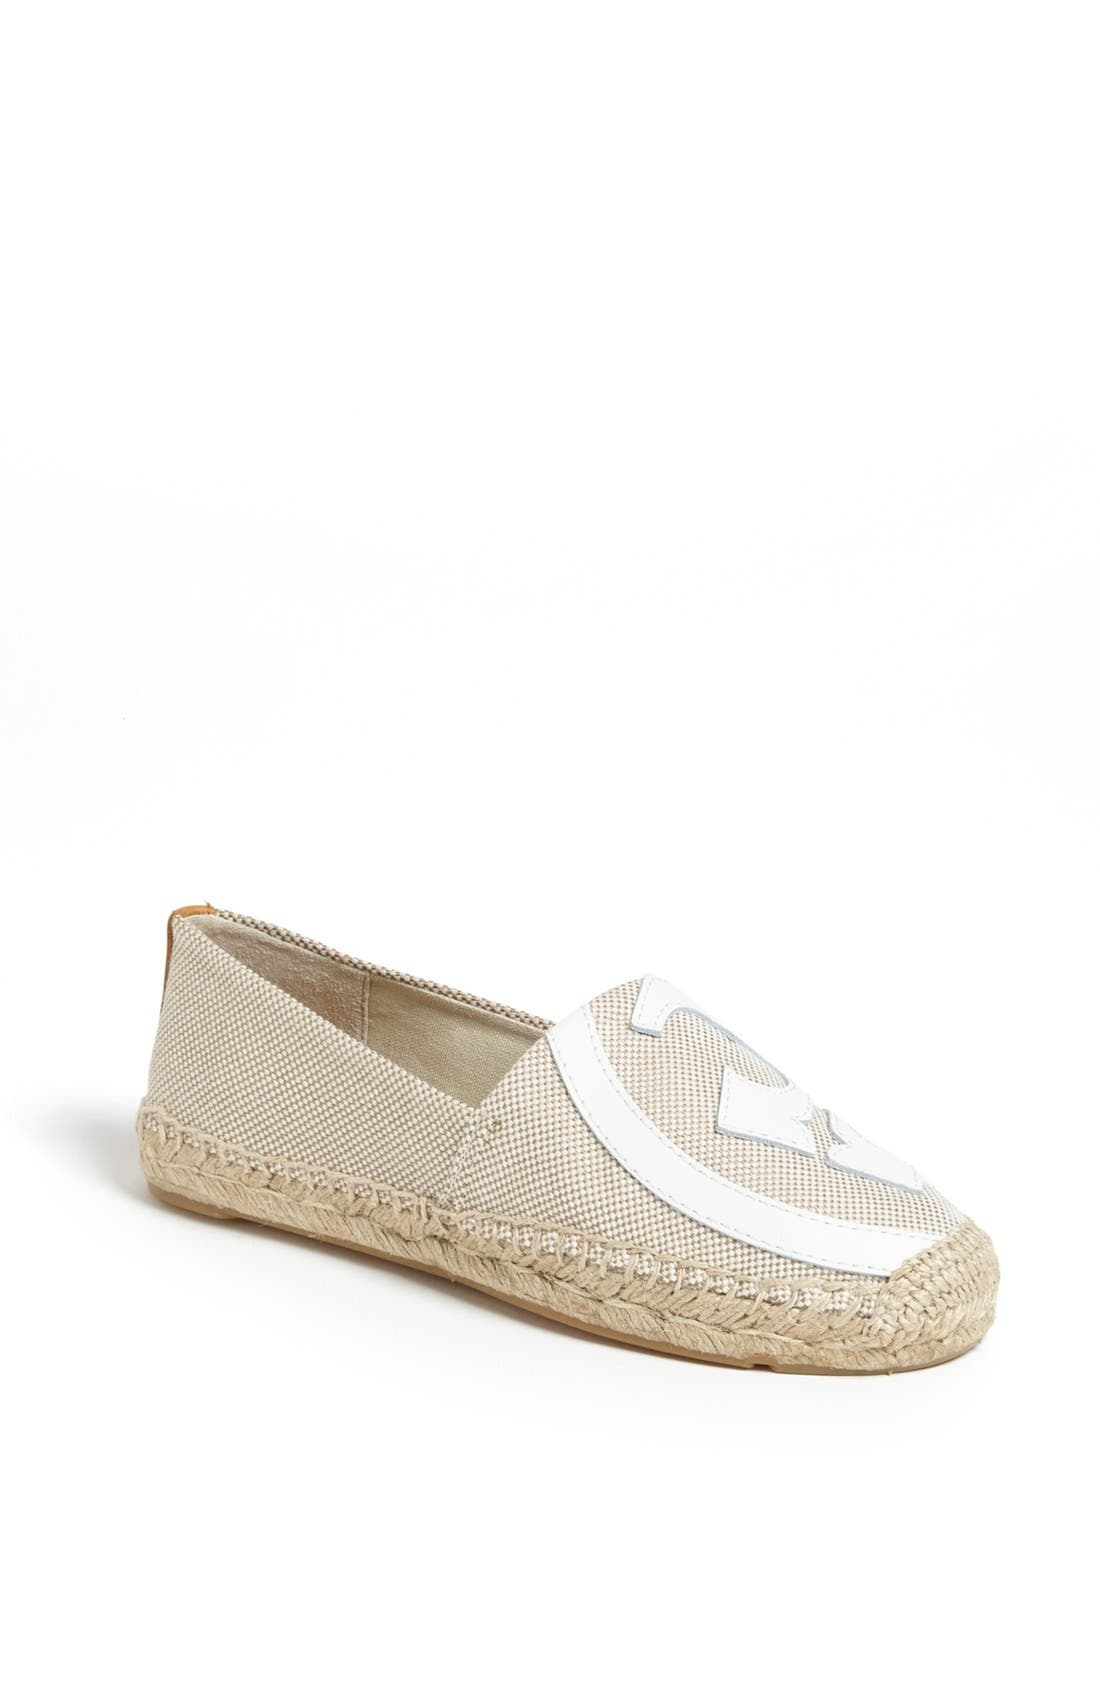 Alternate Image 1 Selected - Tory Burch 'Lonnie' Espadrille Flat